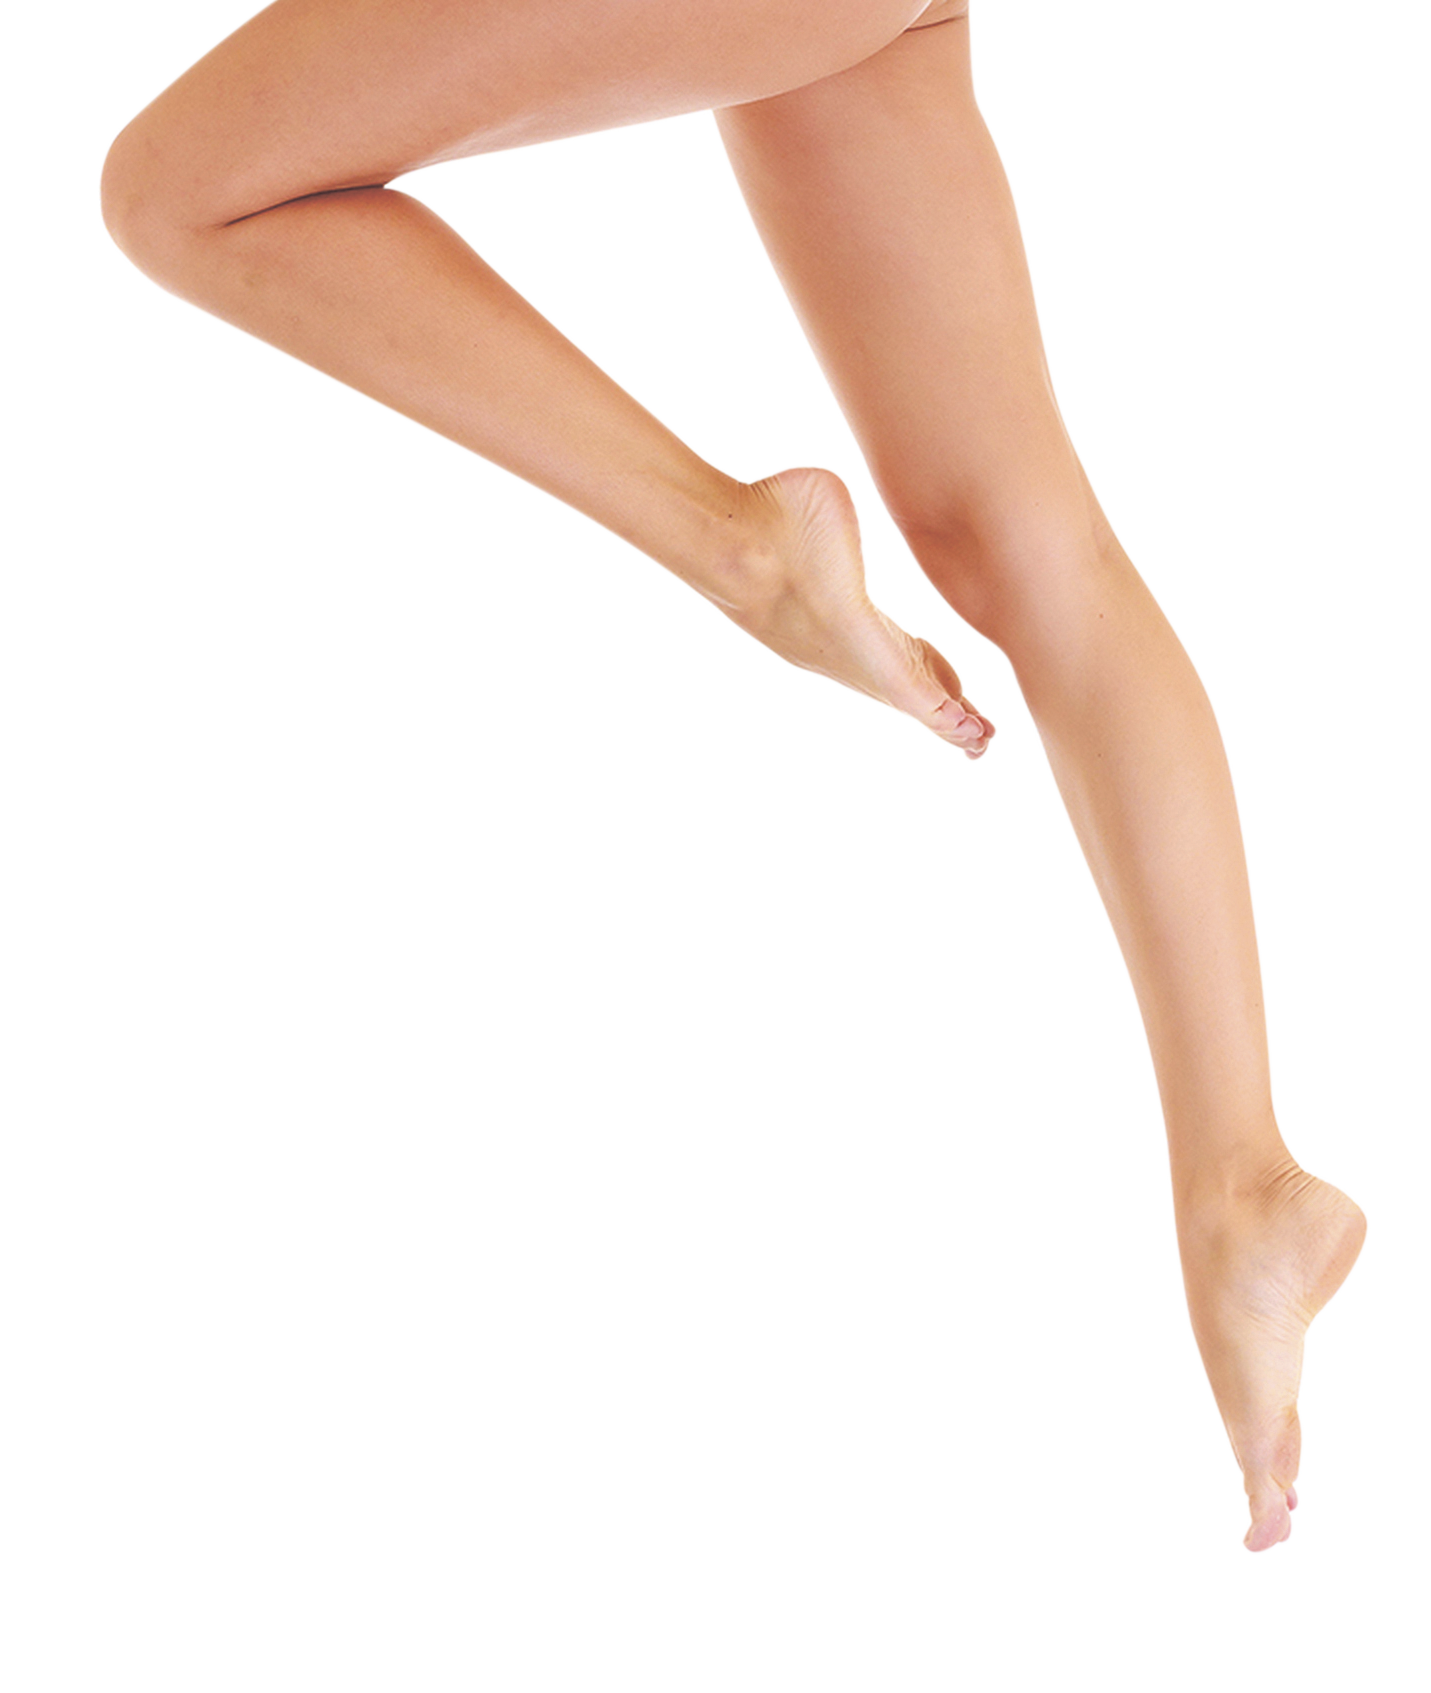 Human legs png. Images free download women